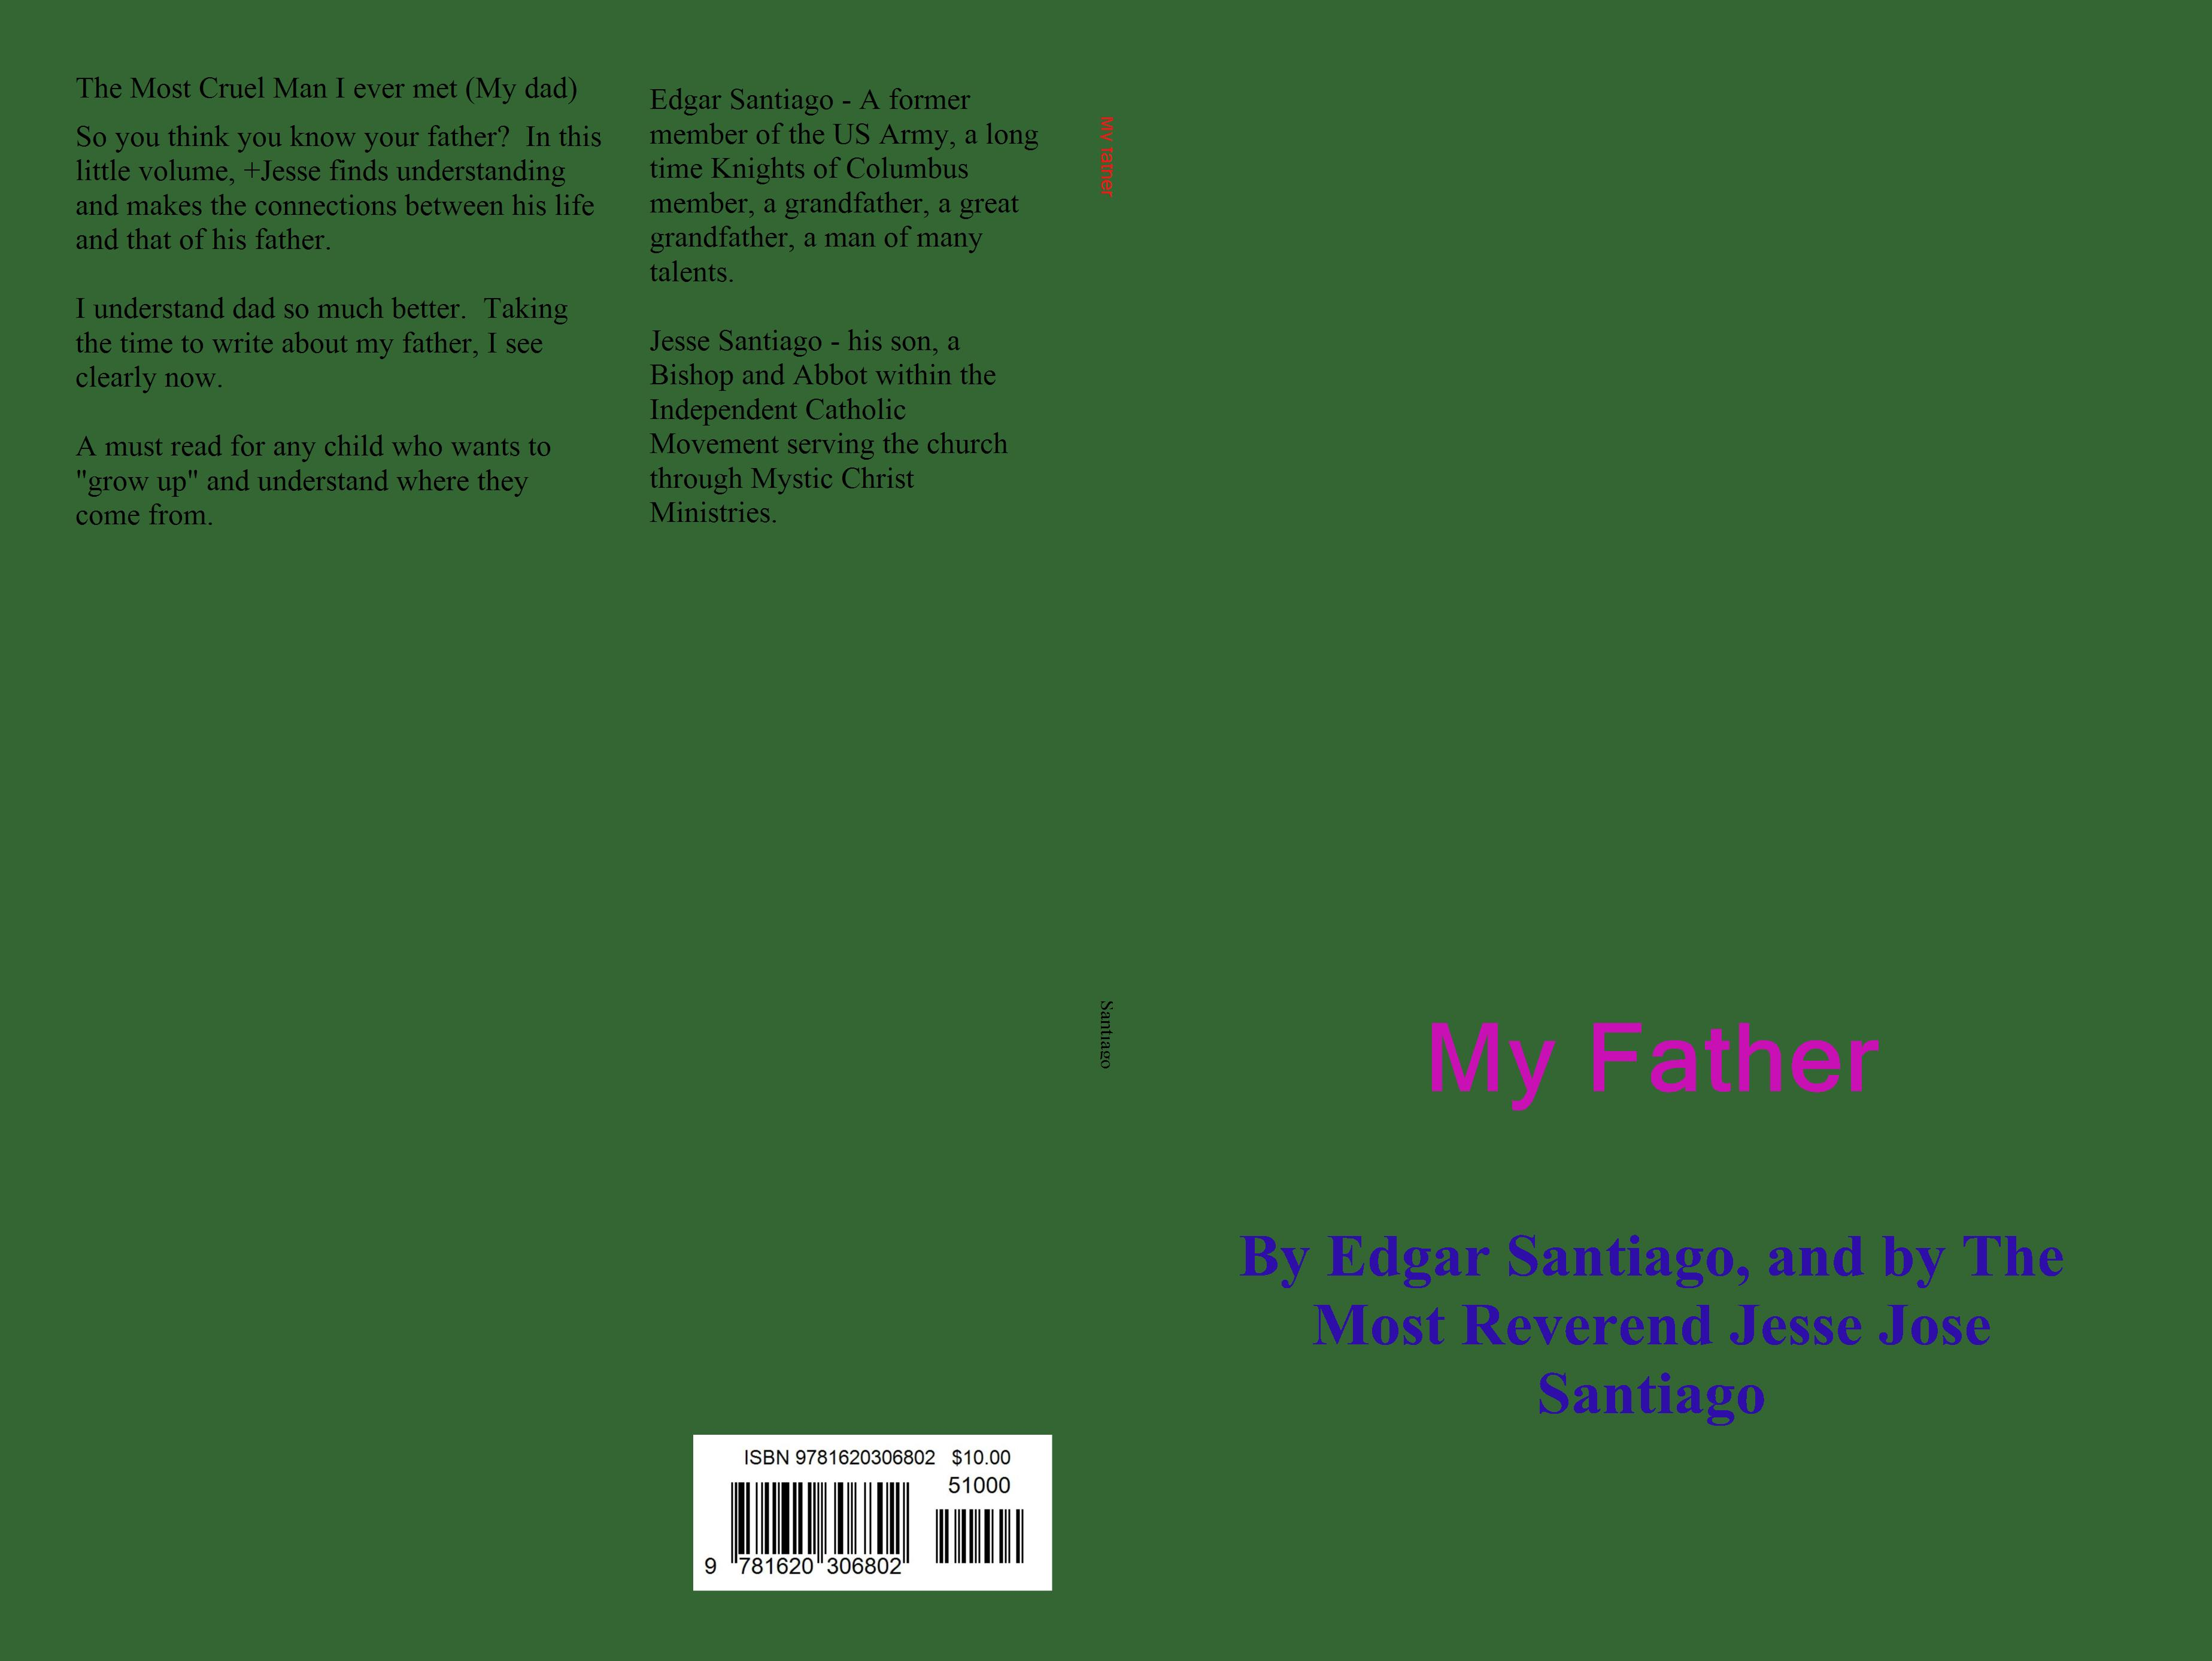 My Father cover image